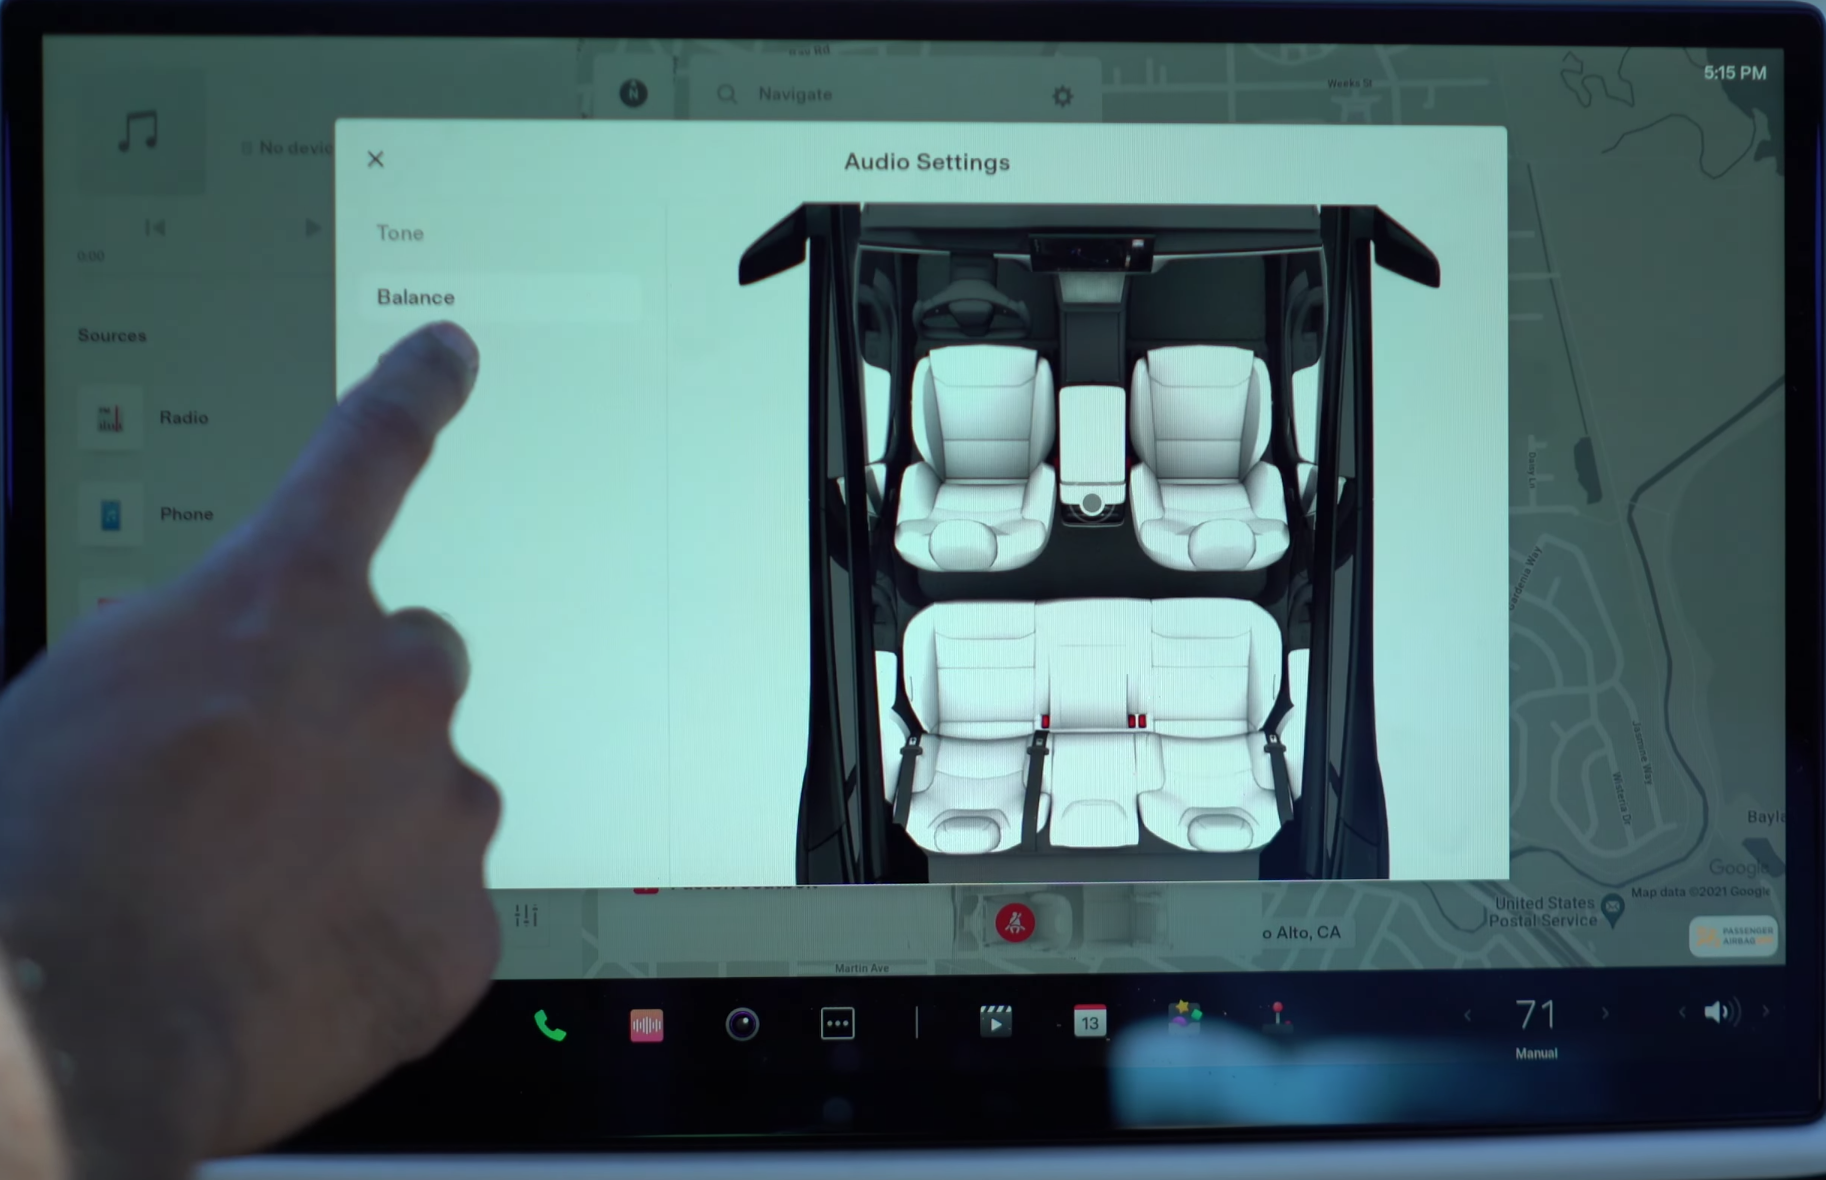 Adjusting the balance for media settings through an illustration of the interior of the vehicle